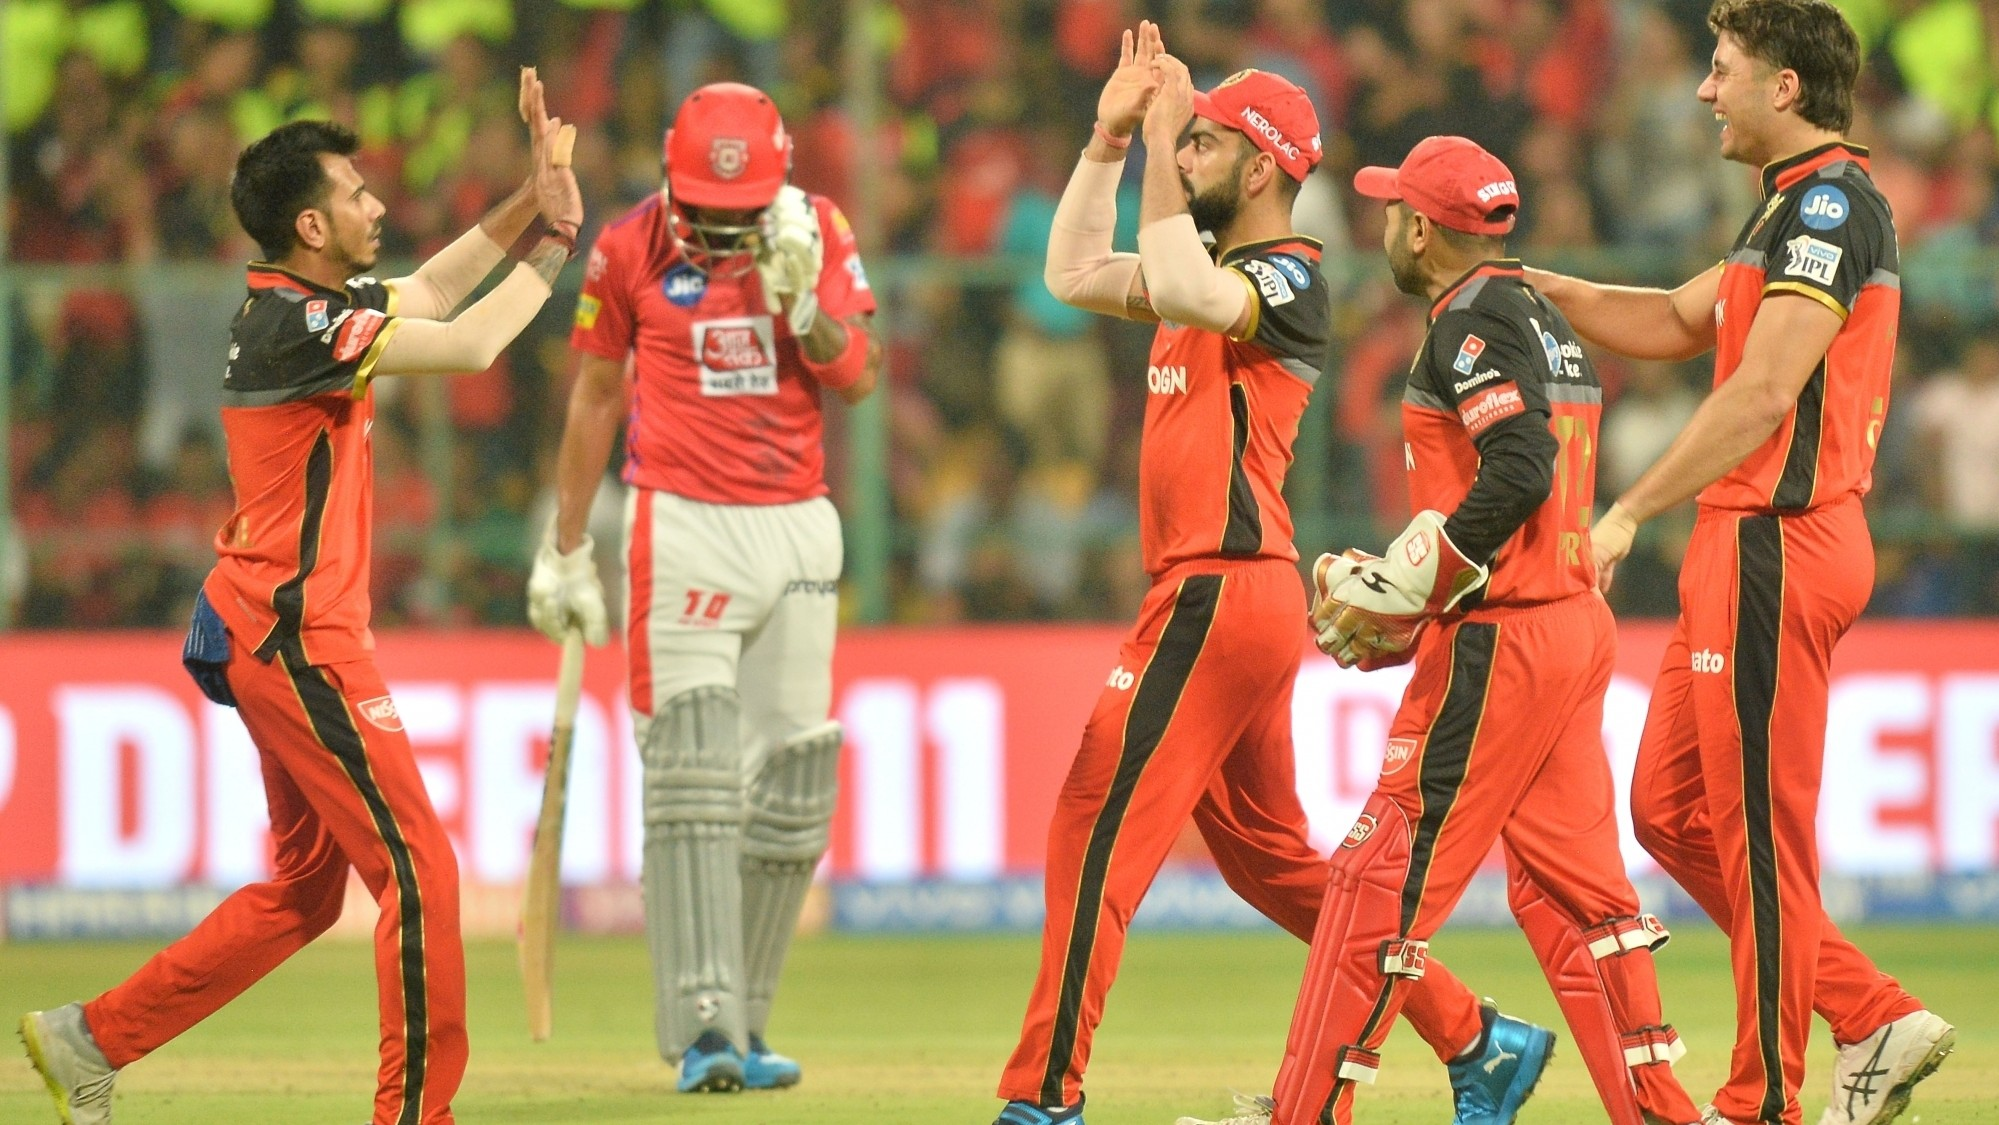 IPL 2019: Twitter reacts as RCB beat KXIP by 17 runs to keep their play-off hopes alive